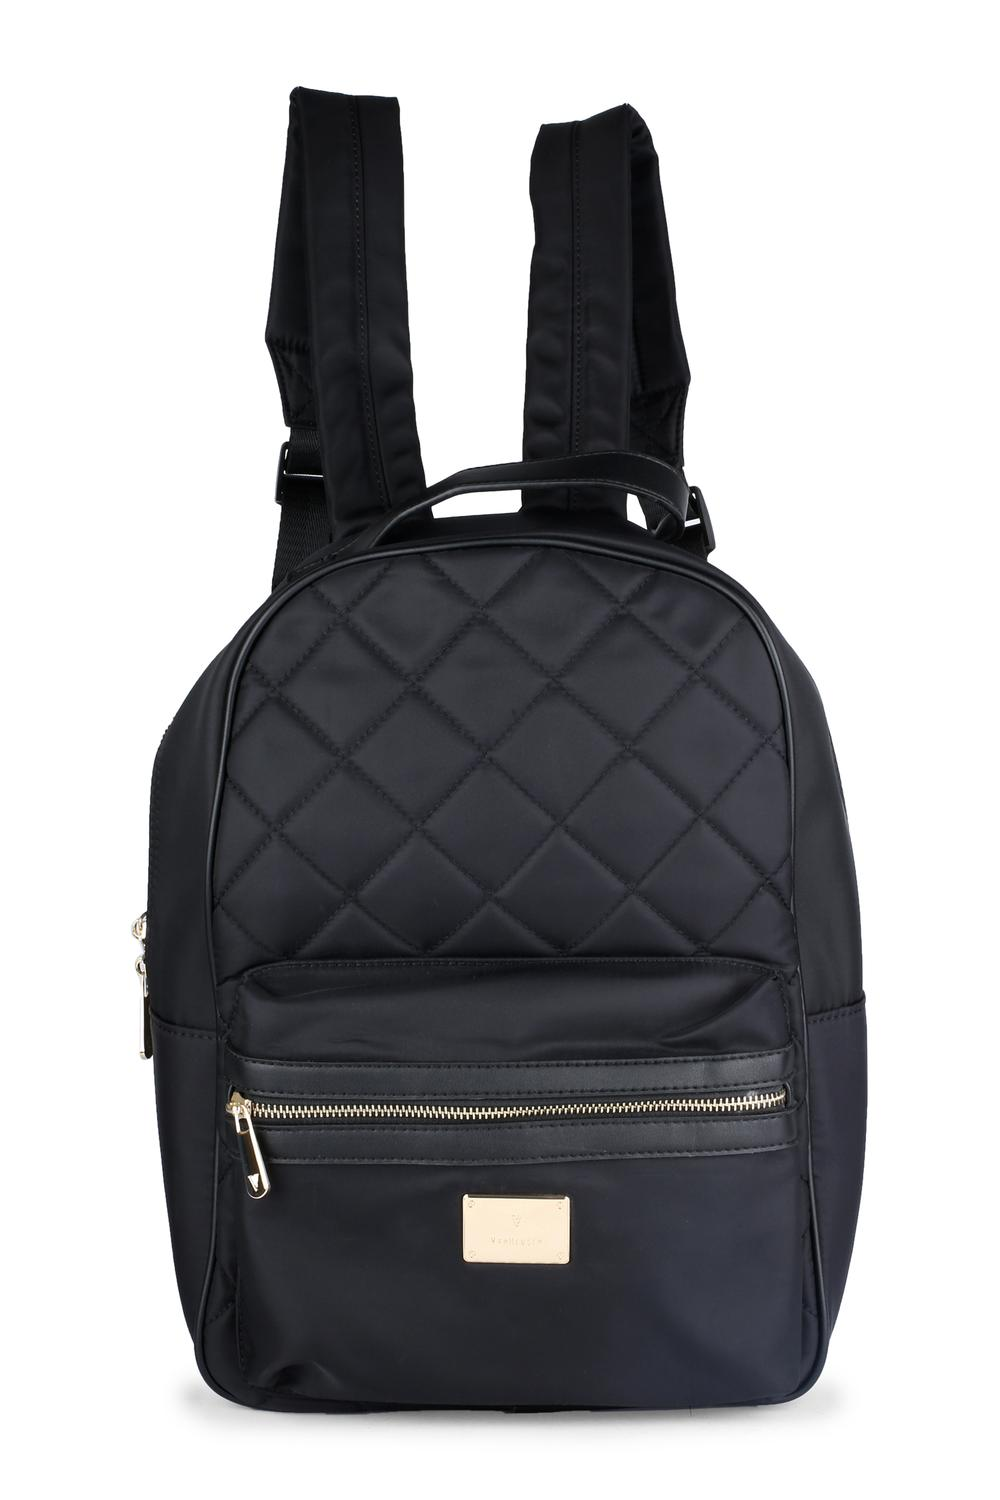 4a336275237 Van Heusen Woman Fashion Accessories, Van Heusen Black Backpack for Women  at Vanheusenindia.com